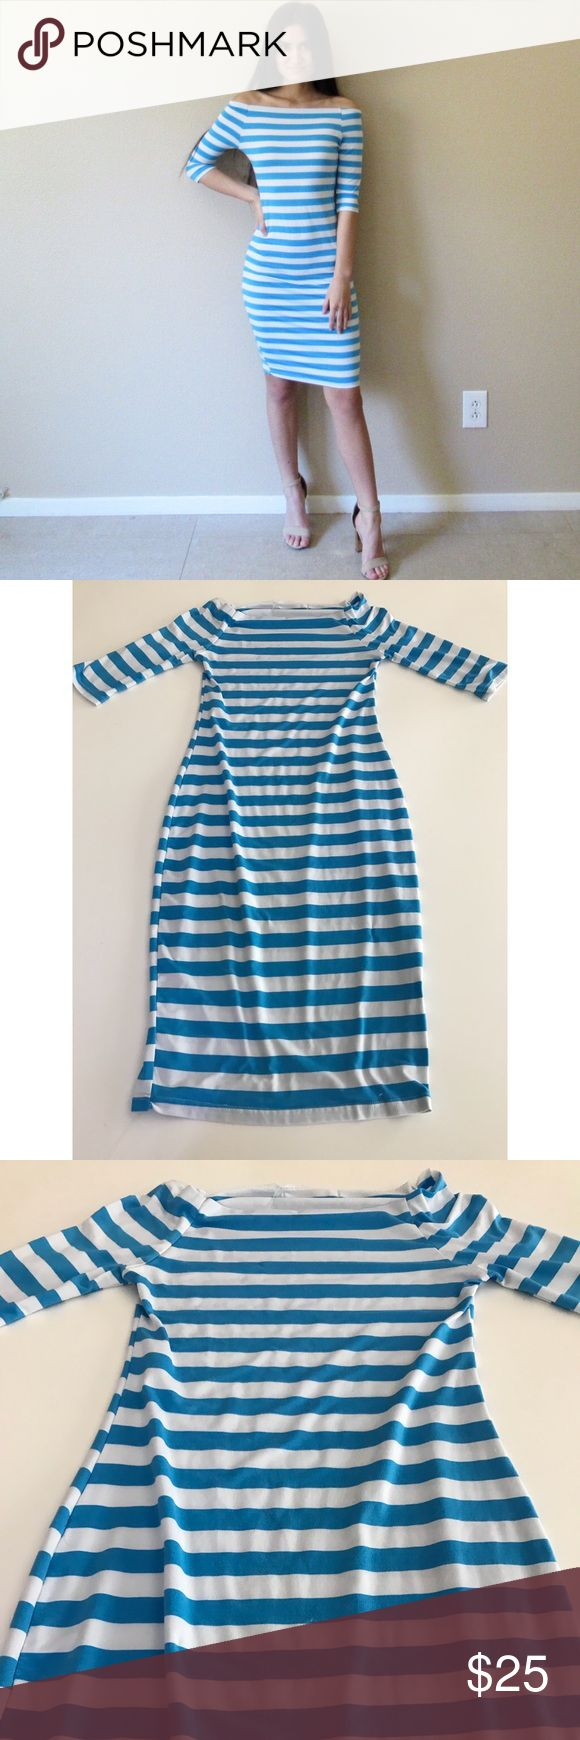 Off shoulder striped bodycon dress In excellent condition. Hugs figure and accentuates curves. Great business/office dress or for going out. Material is stretchy and breathable. Size is S. Dresses